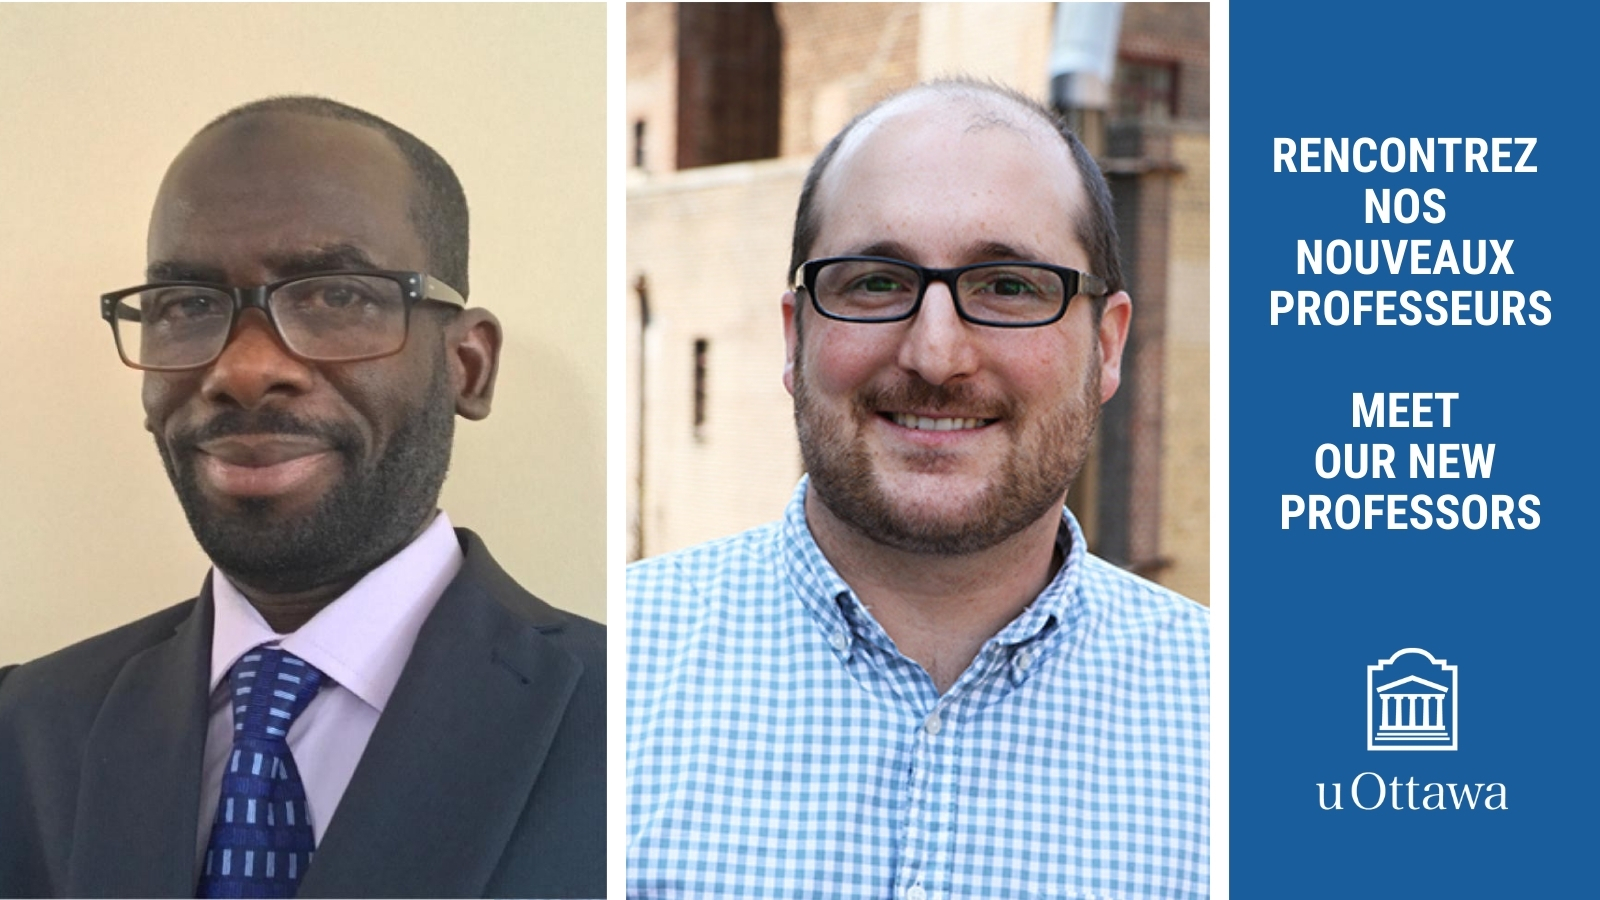 New Professors El Hadji Yaya Koné and John Ranellucci